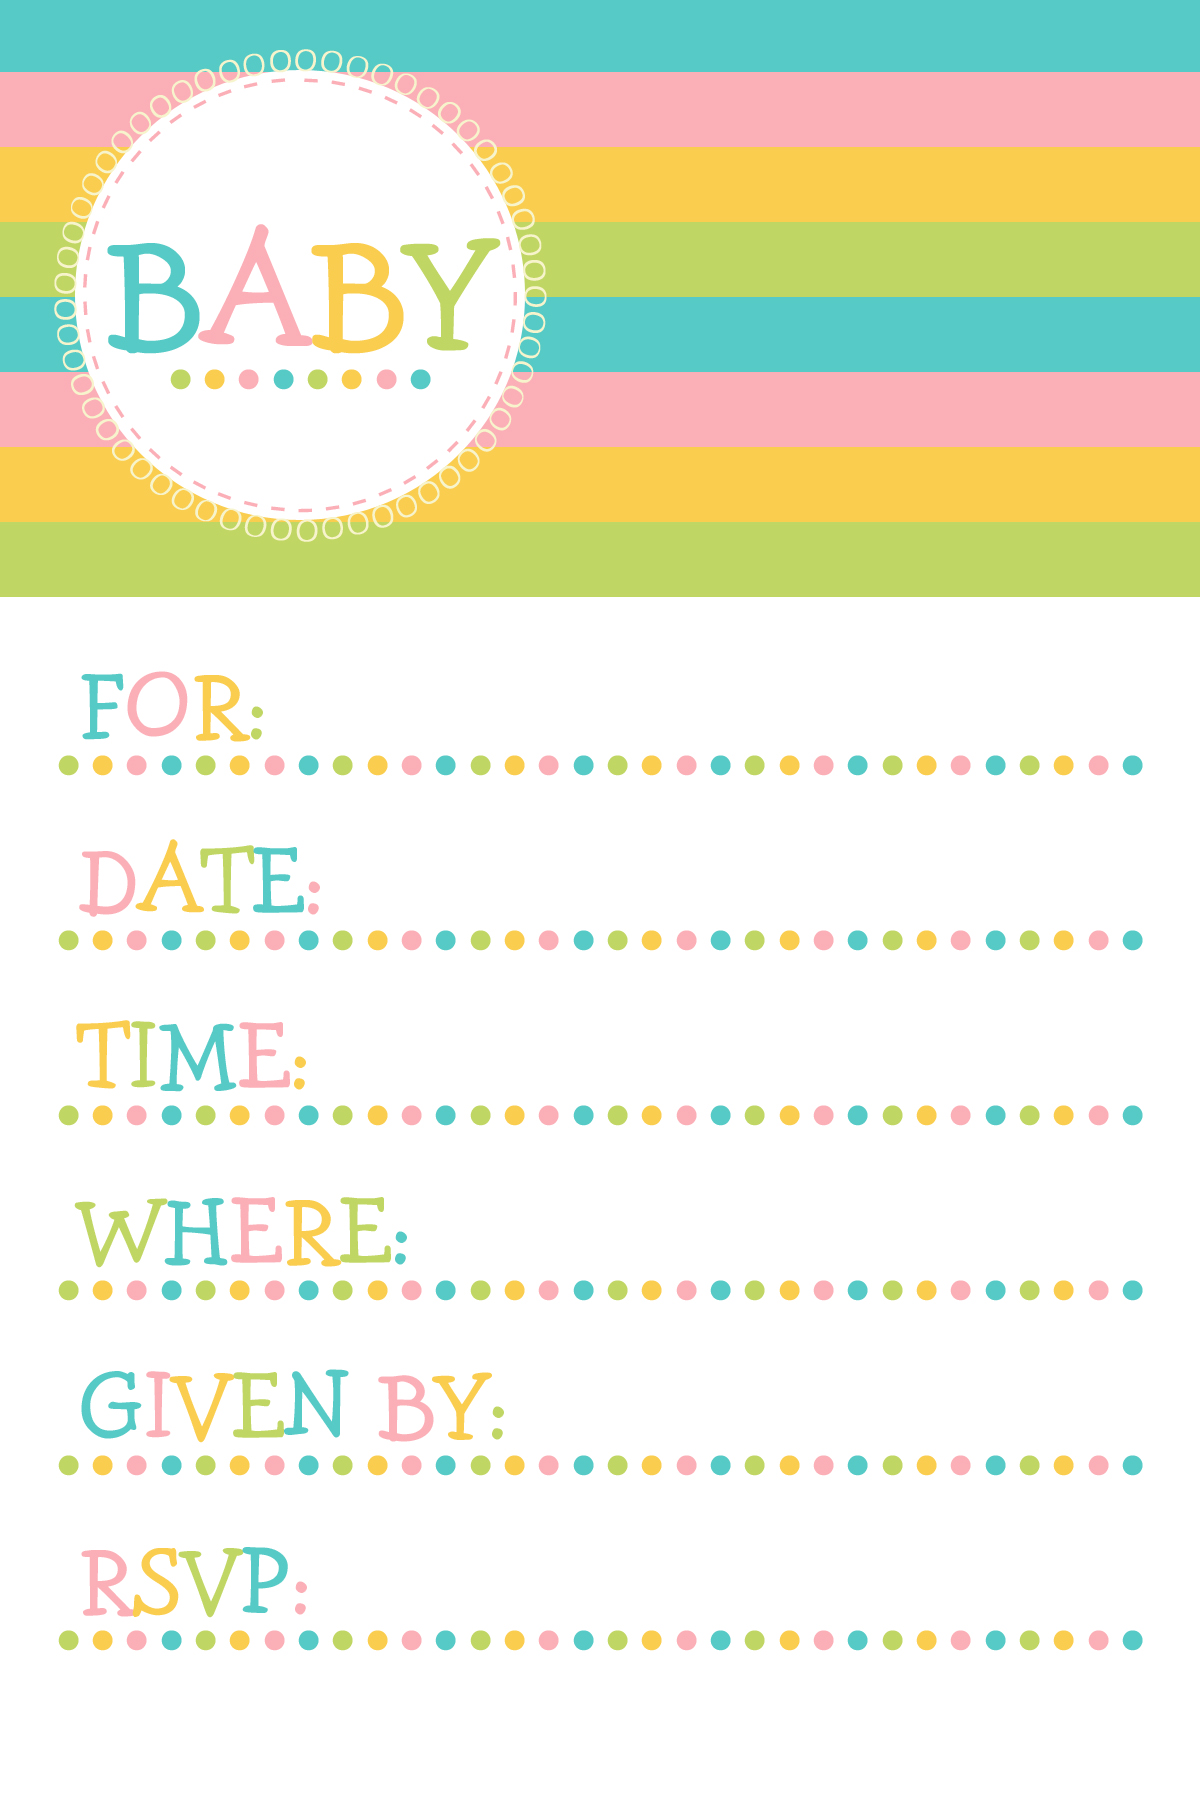 Baby girl clipart simple graphic transparent stock Baby girl shower invite clipart - ClipartFox graphic transparent stock